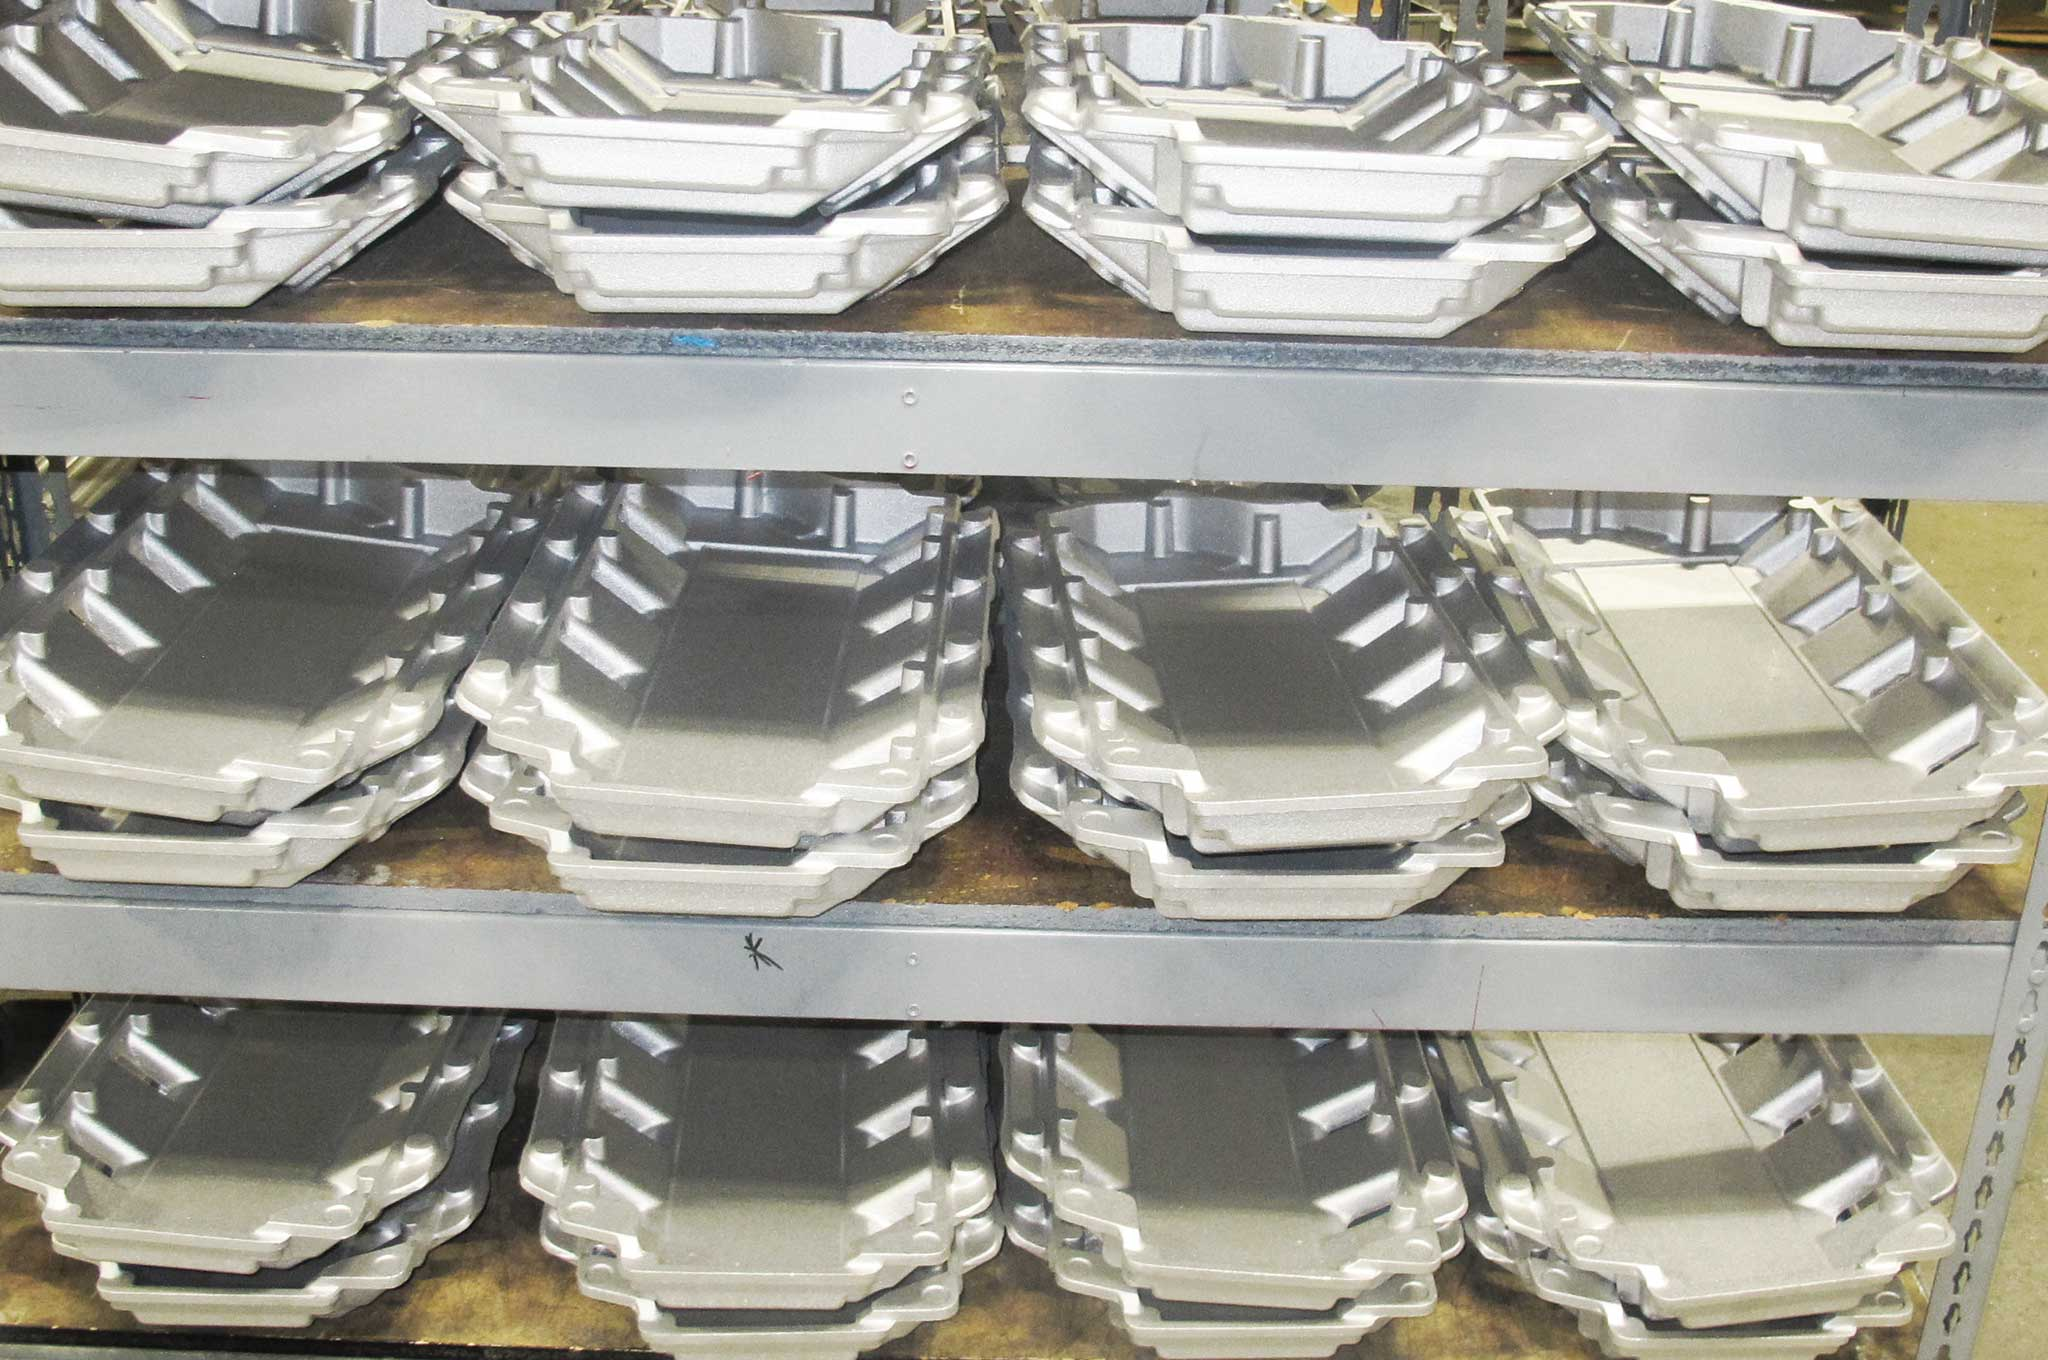 magnuson-supercharger-systems-valley-pans